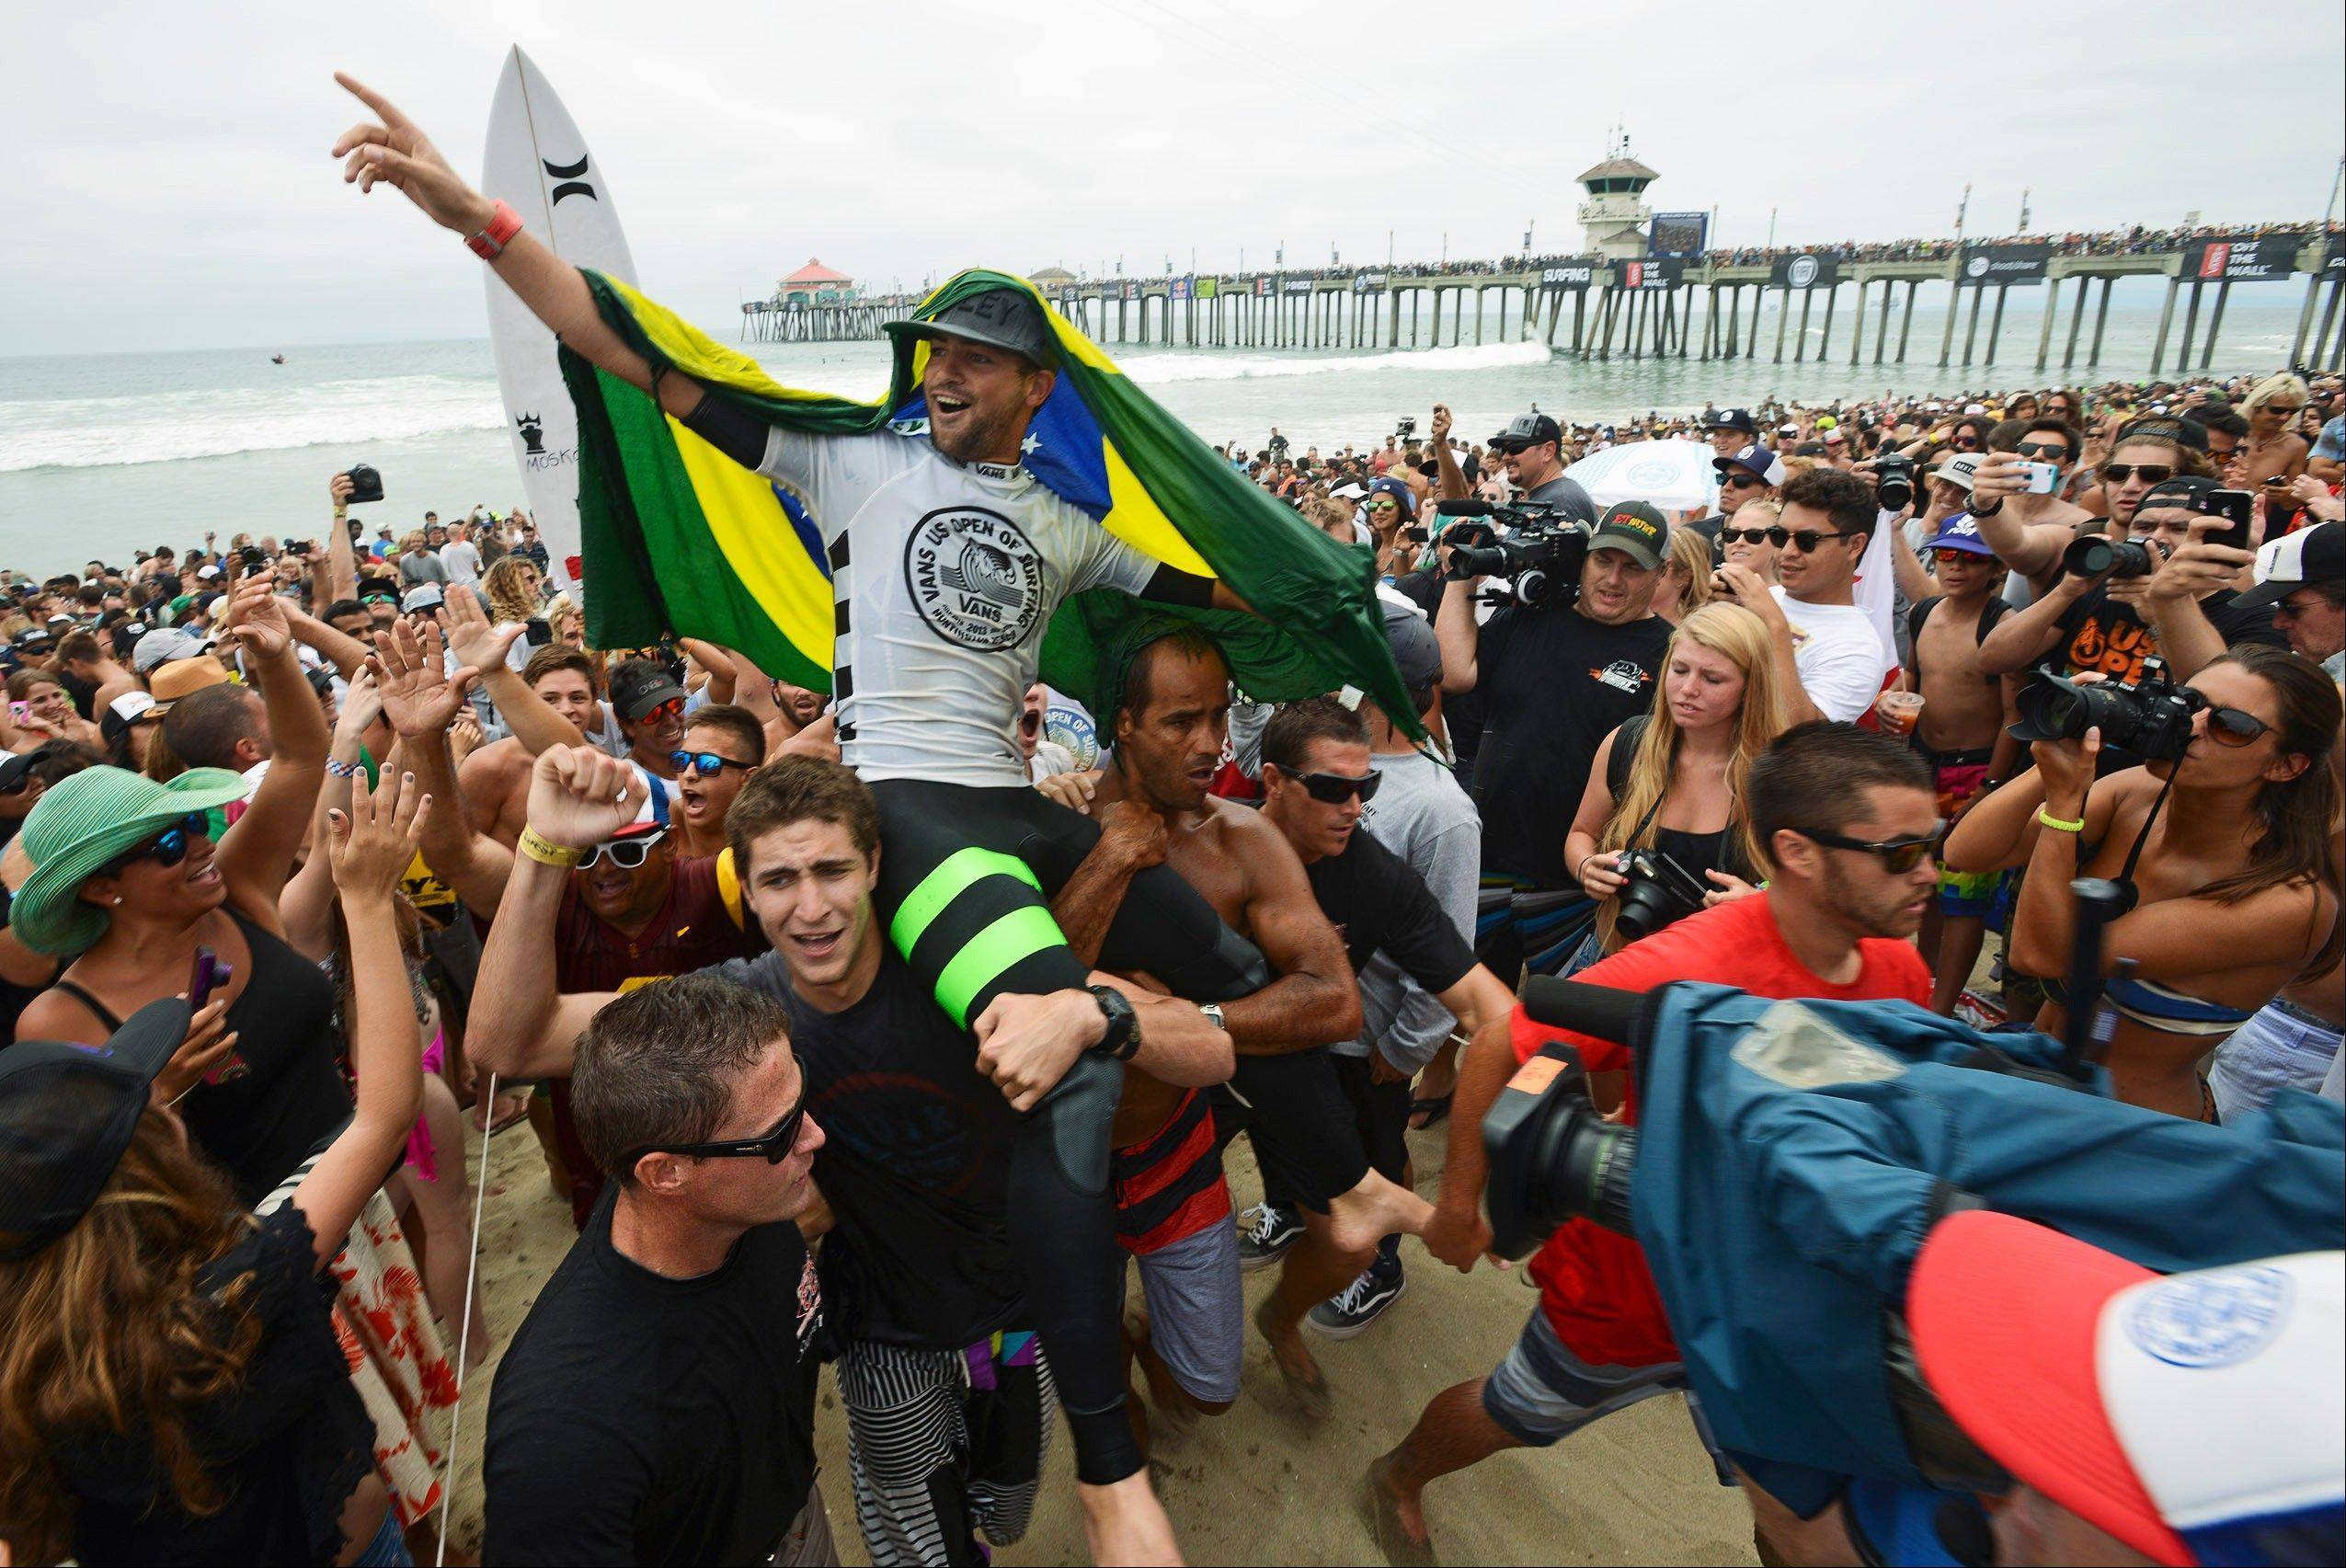 Associated Press Alejo Muniz, of Brazil, was crowned the men�s champion of the 2013 Vans US Open of Surfing competition after defeating local surfer Kolohe Andino in the men�s final on Sunday, July 28, 2013, in Huntington Beach, Calif. Police say eight people have been arrested after a rowdy crowd surged through downtown after the event, fighting and damaging property.